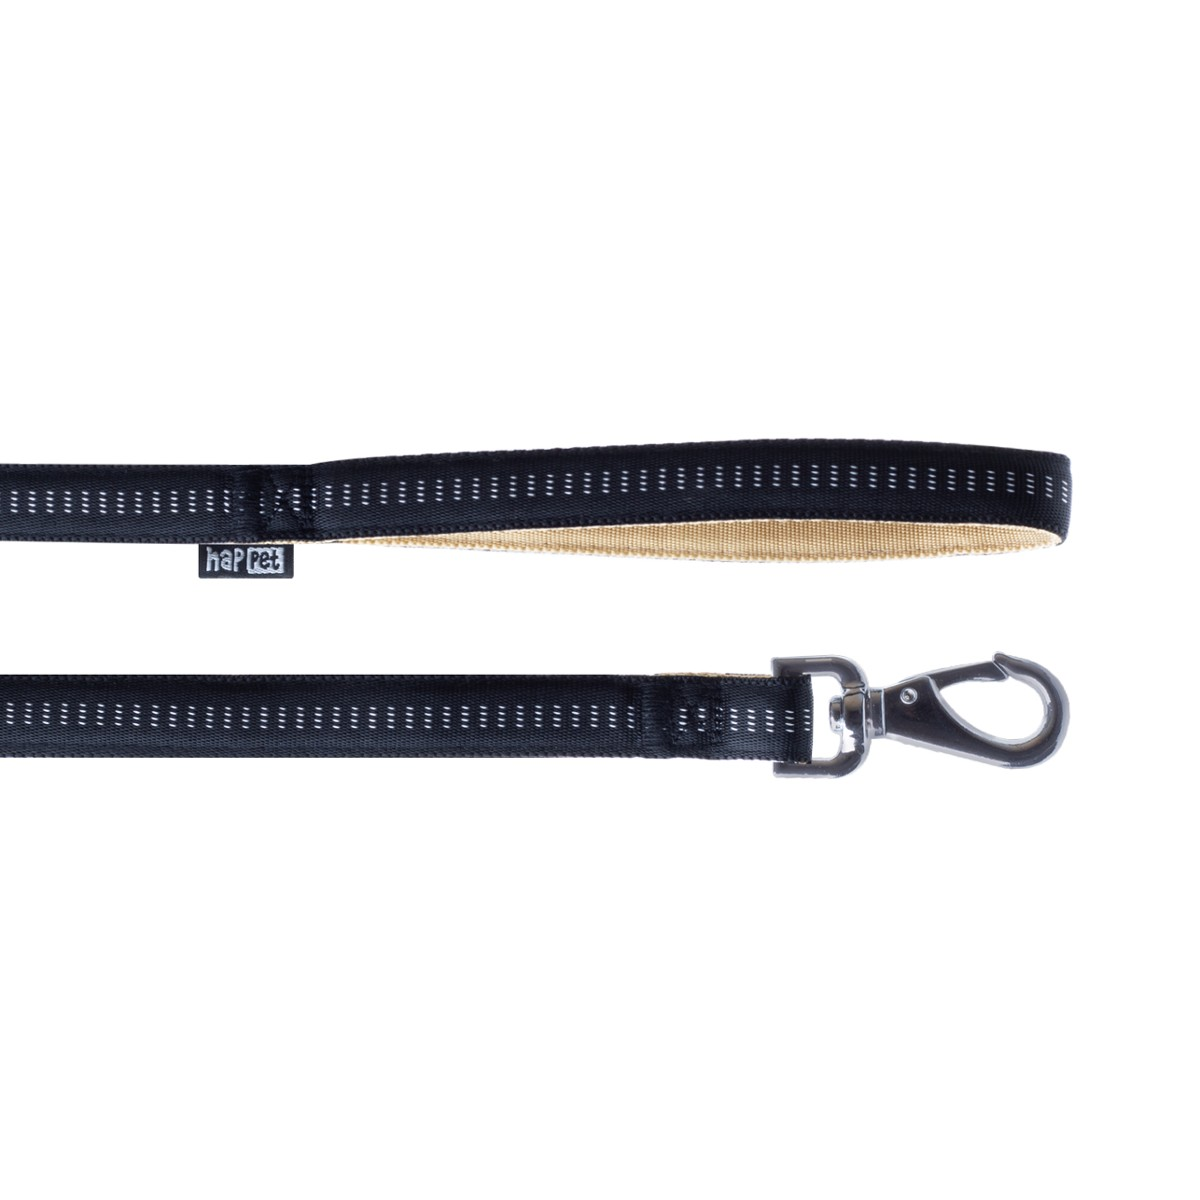 Soft nylon leash black size XL 2.5cm